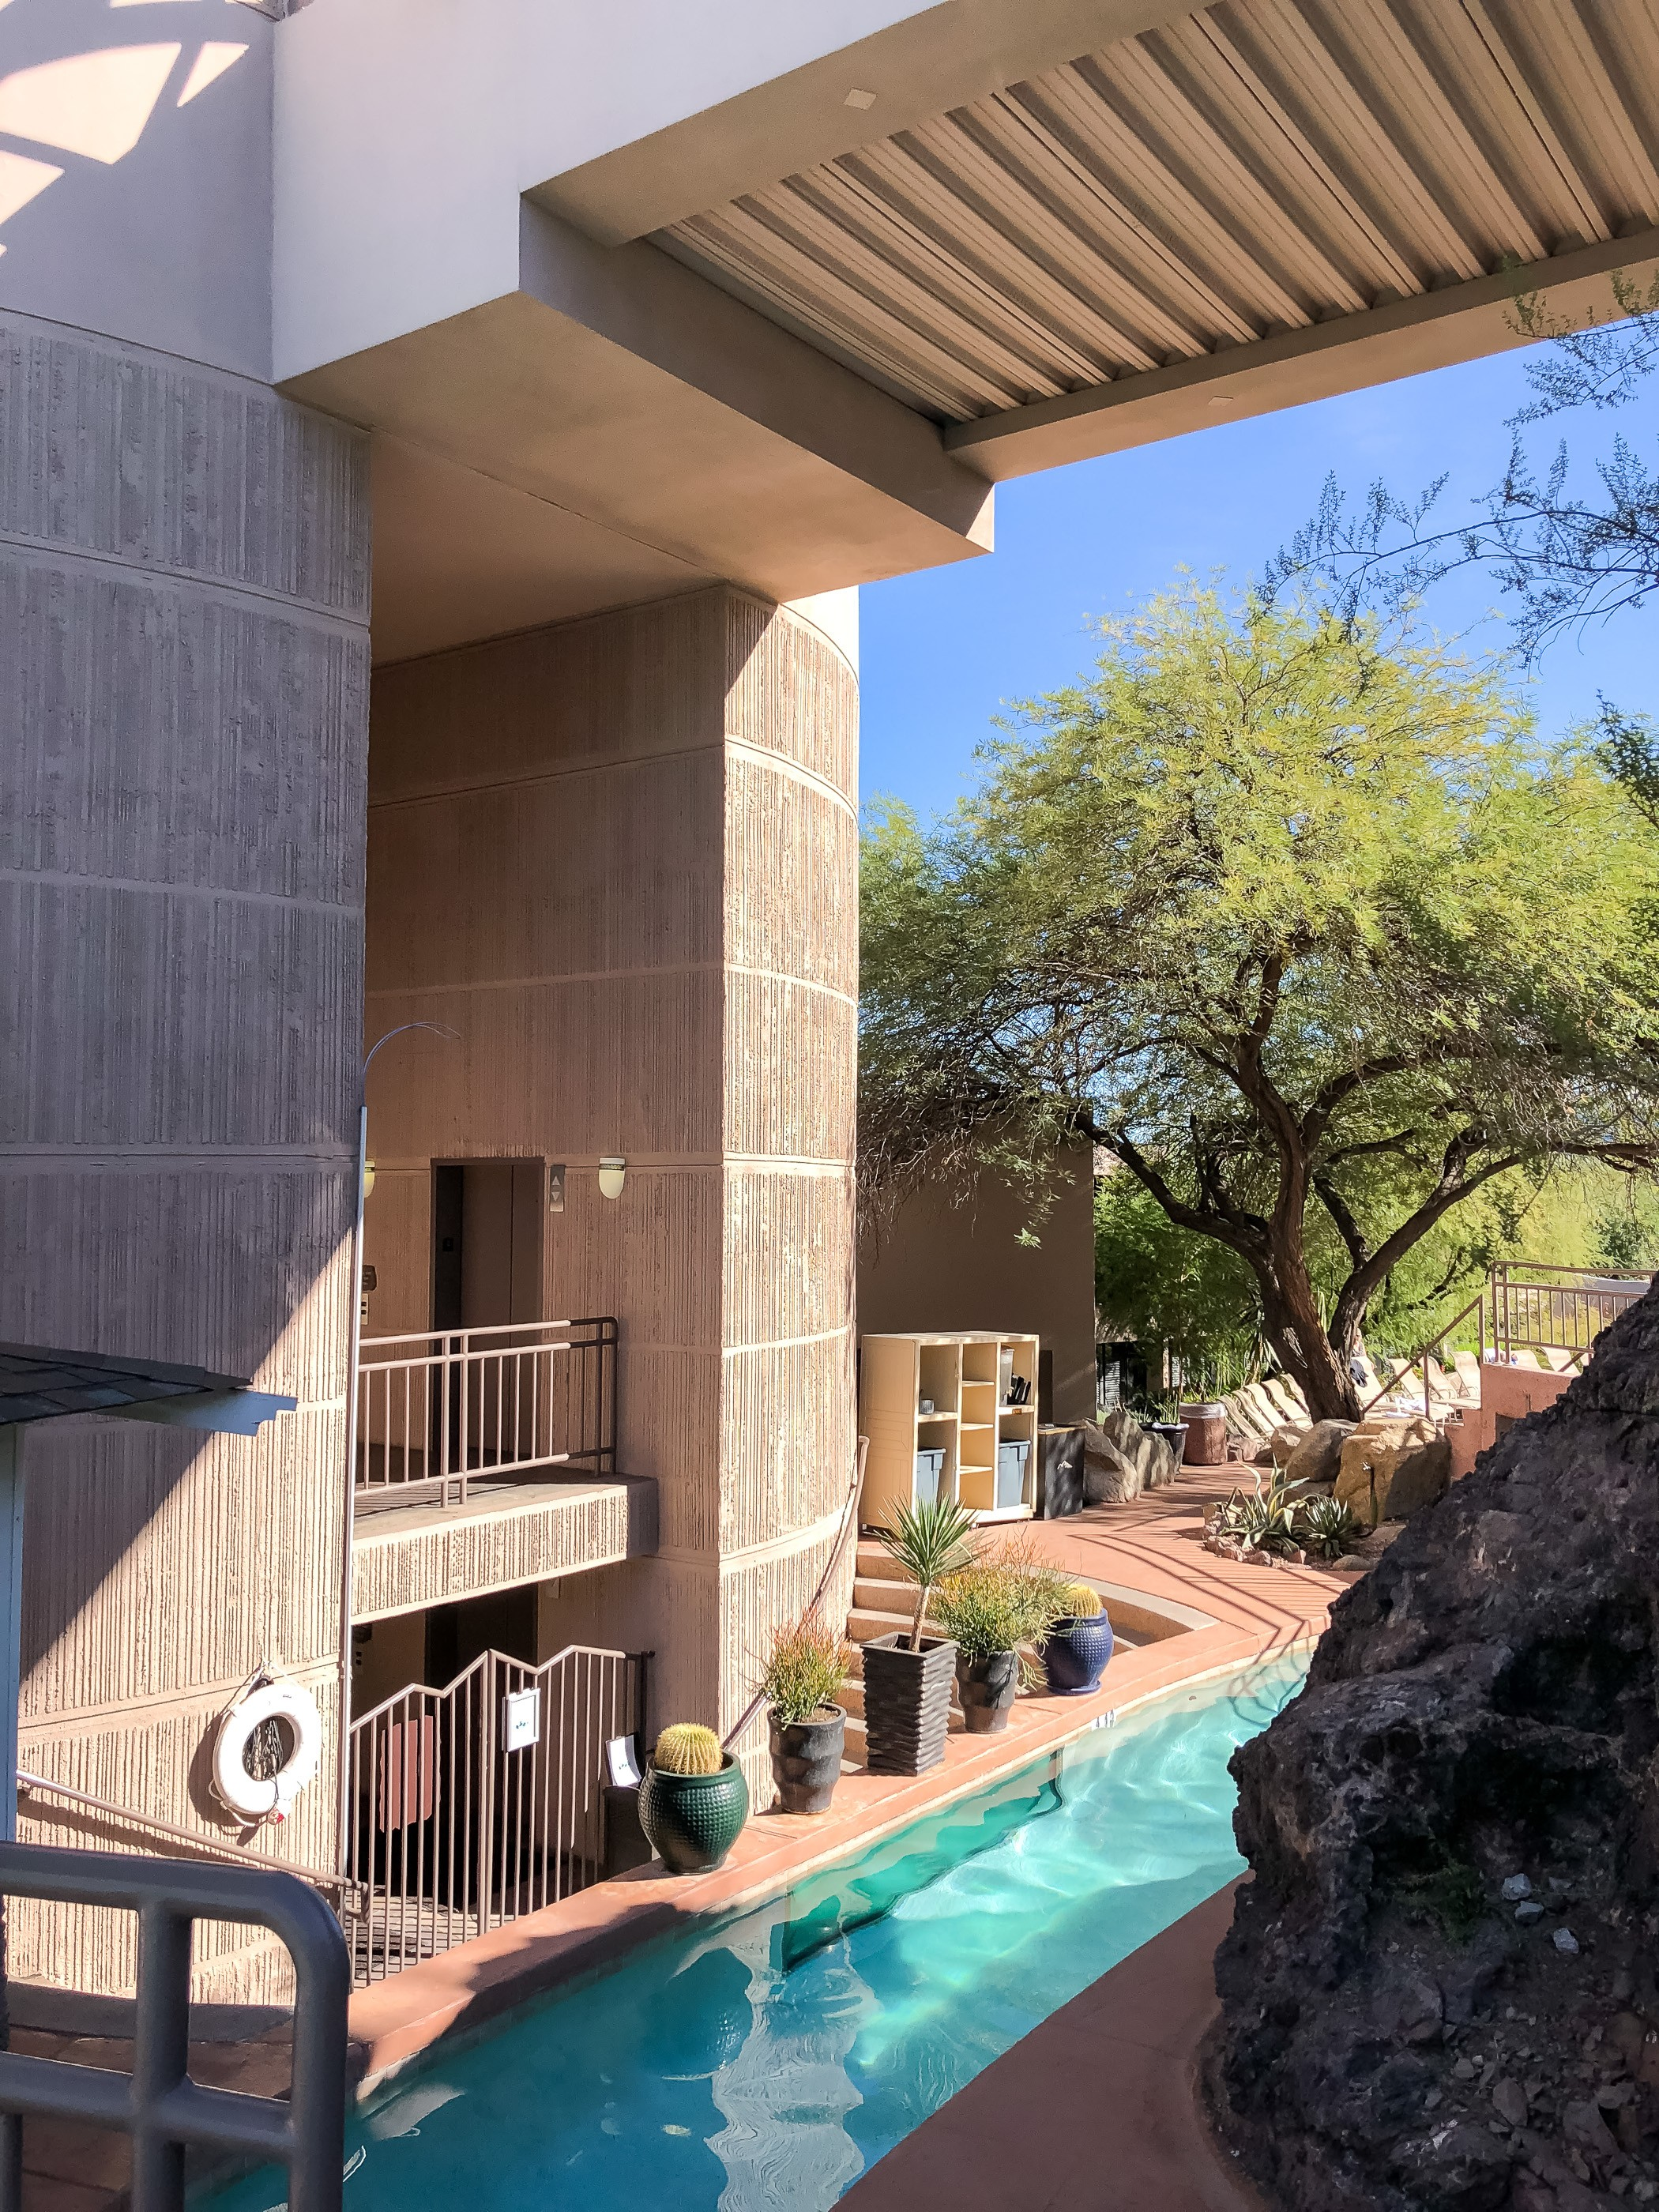 What to do in Tempe AZ, by travel blogger What The Fab